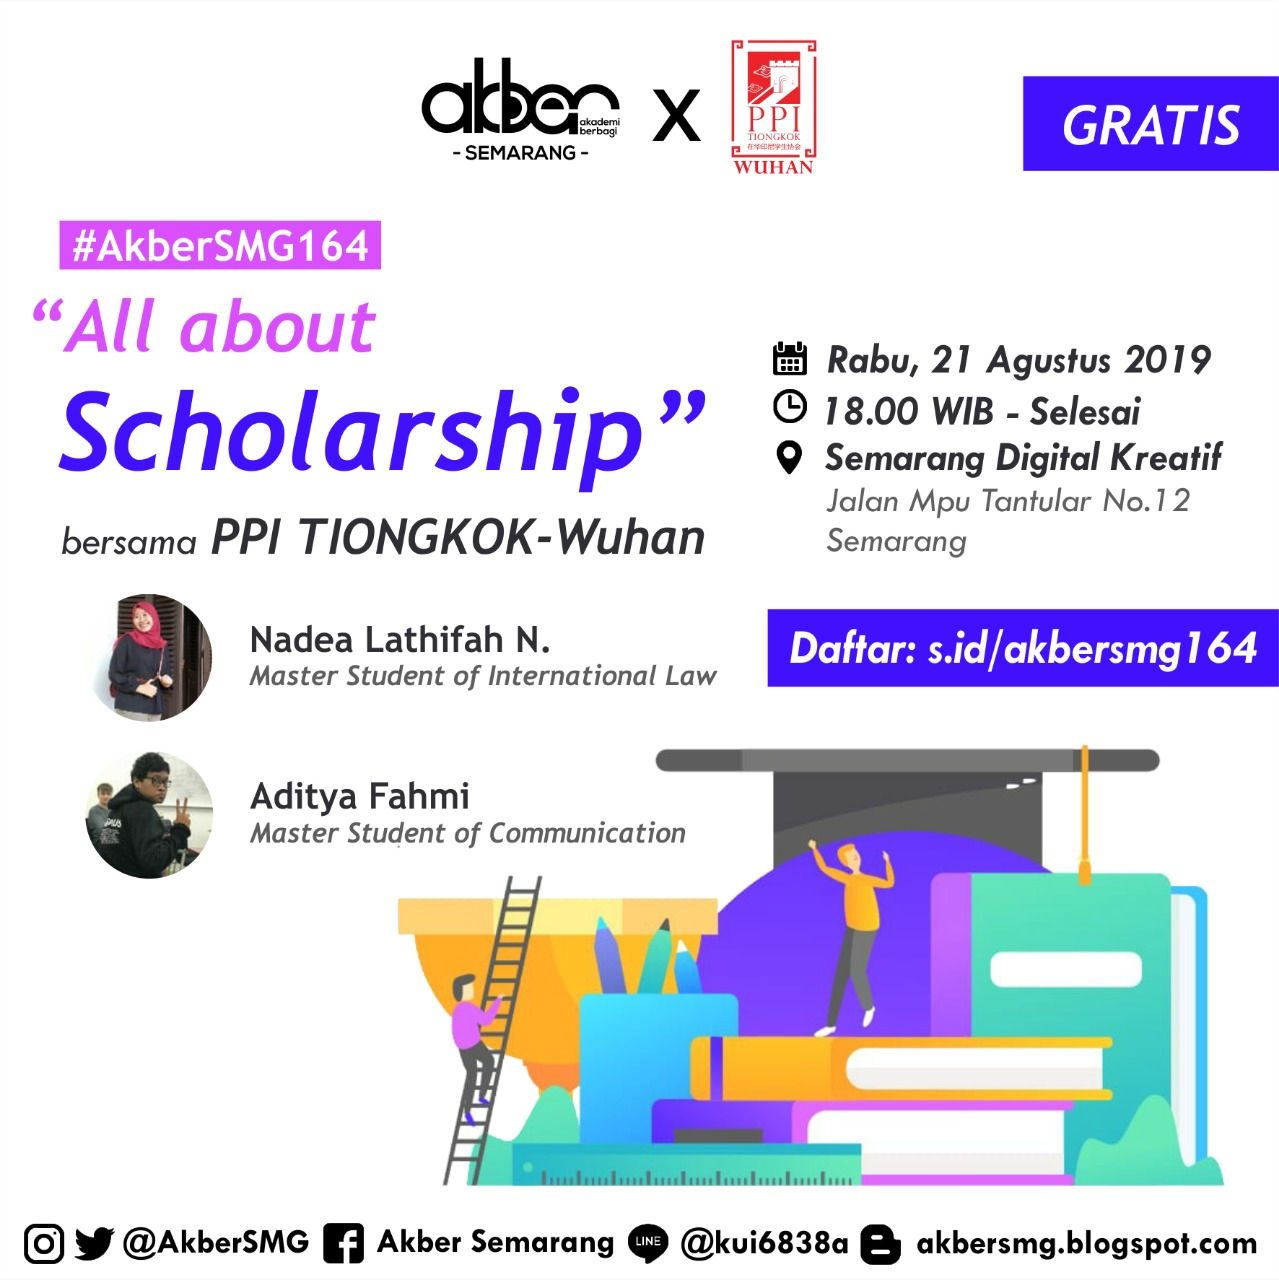 Semarang: All About Scholarship